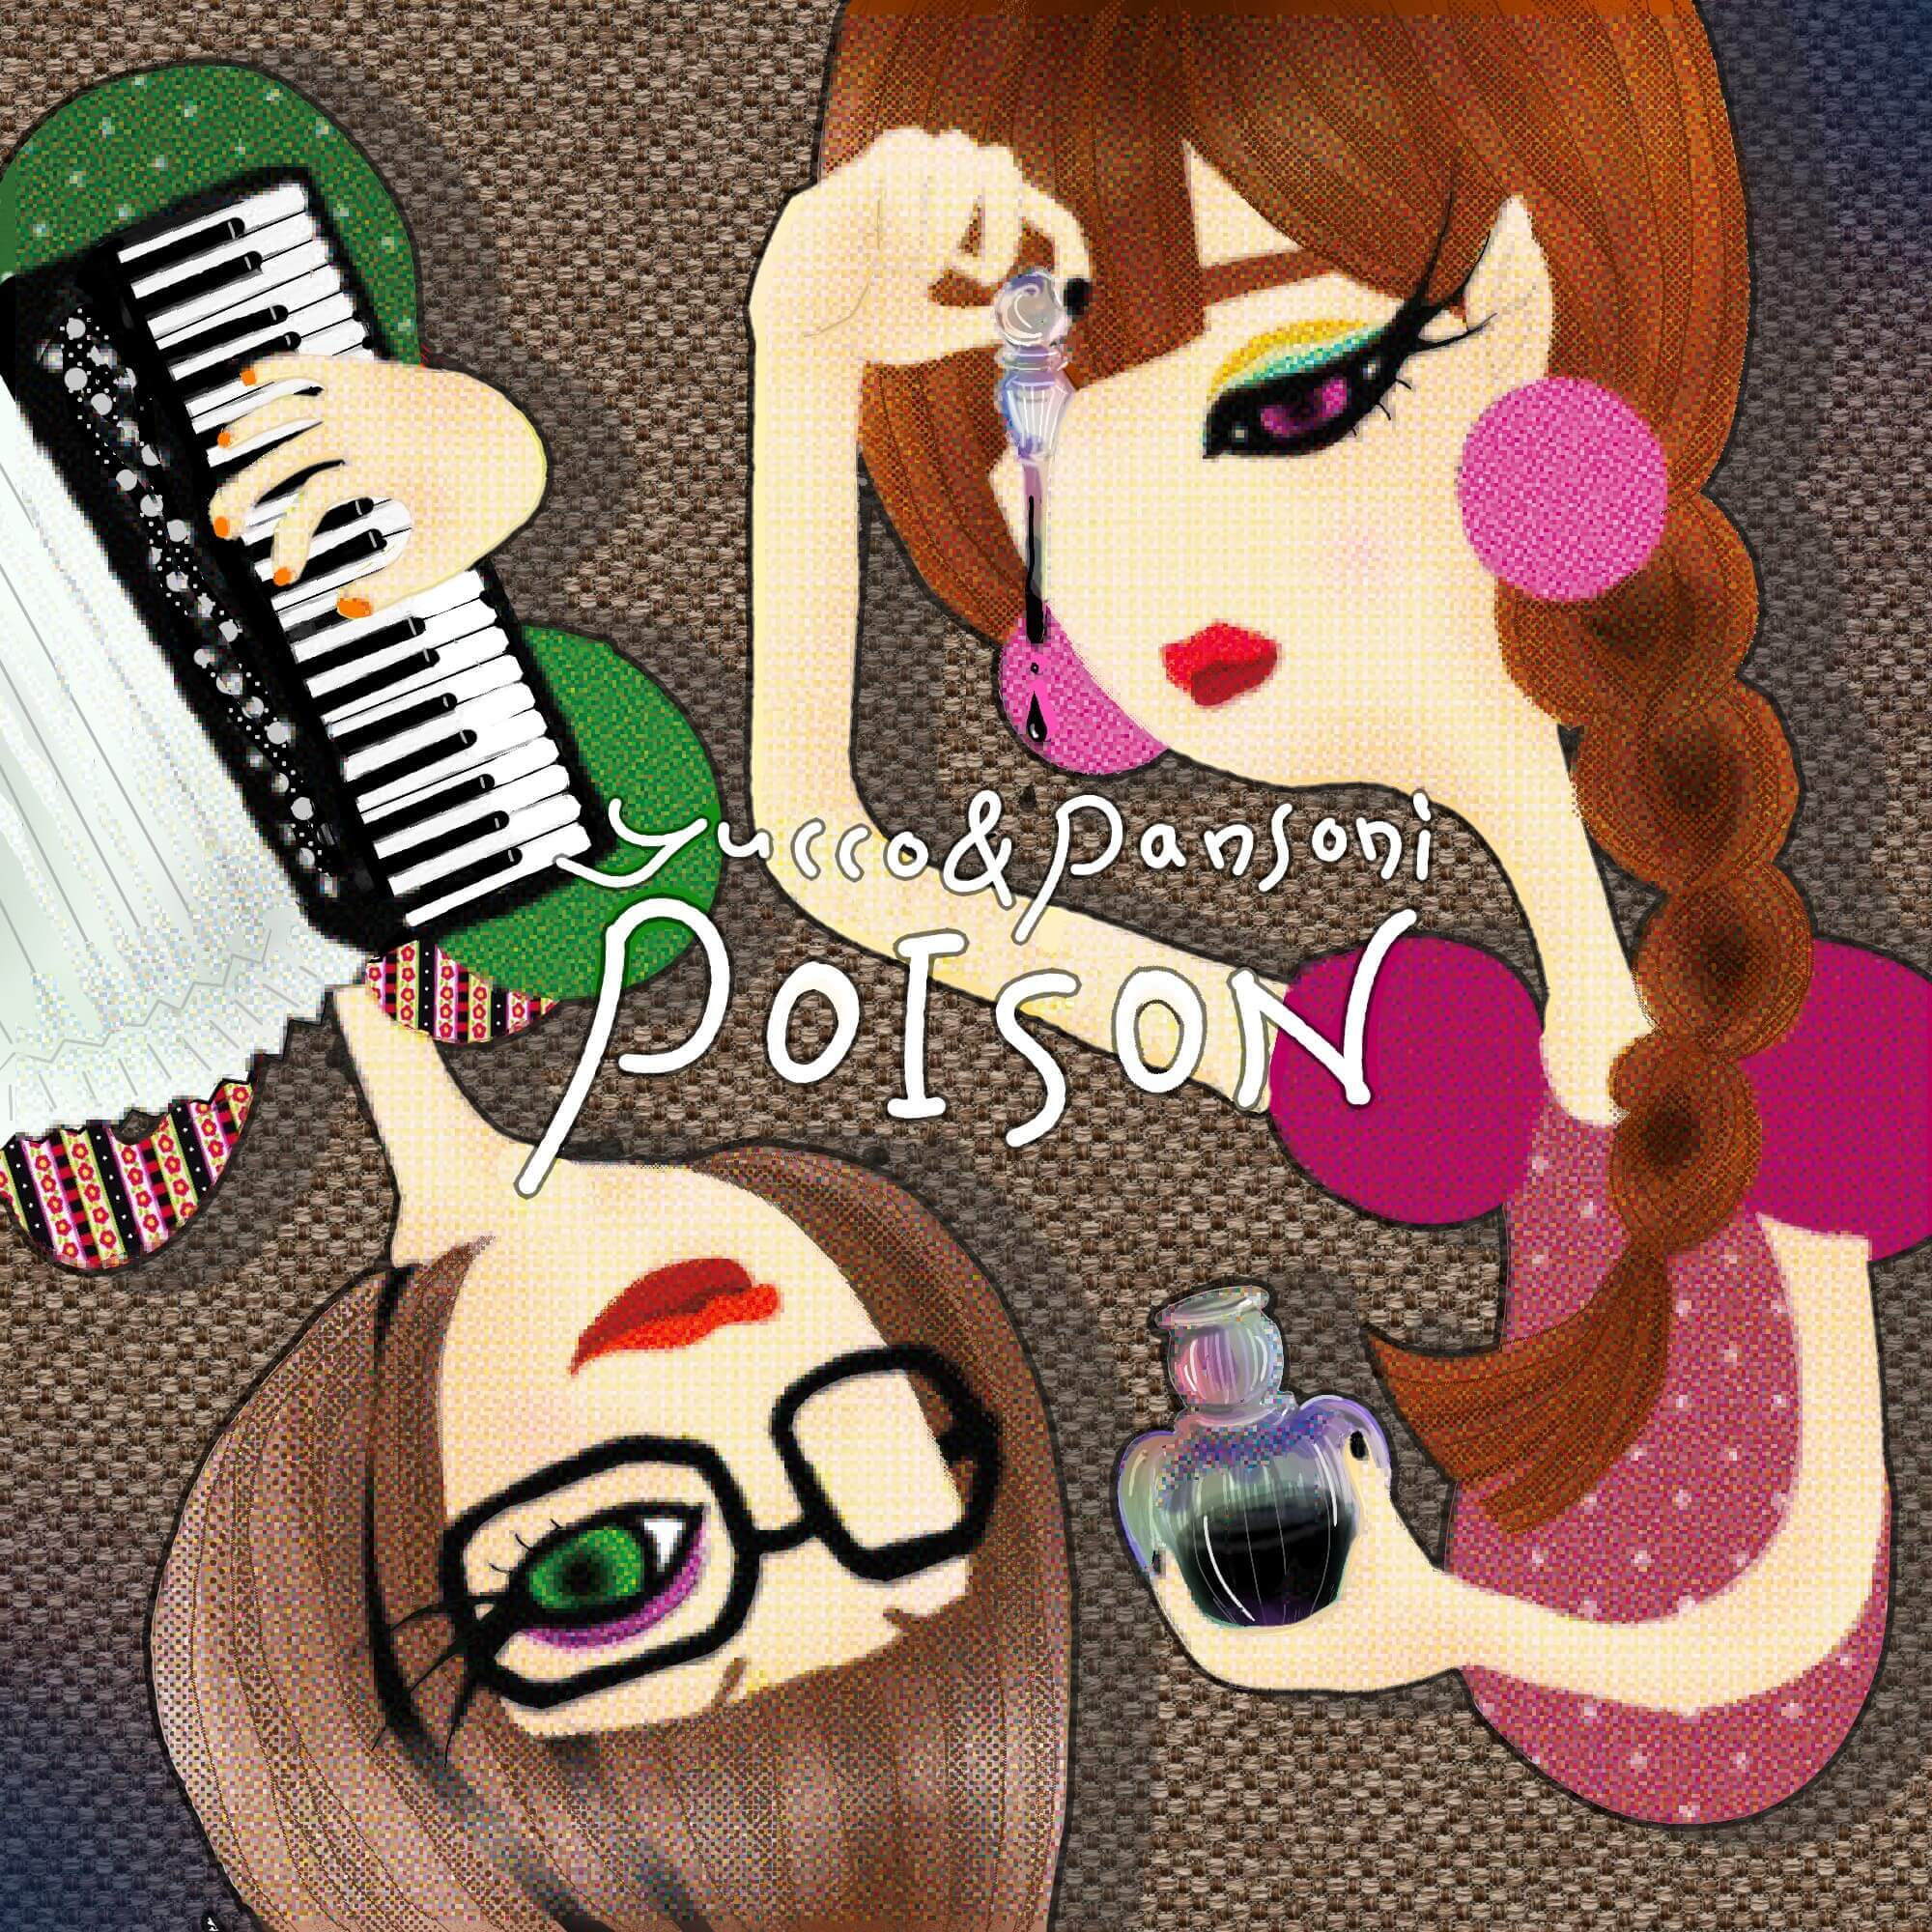 yucco&ぱんそに 1st single POISON